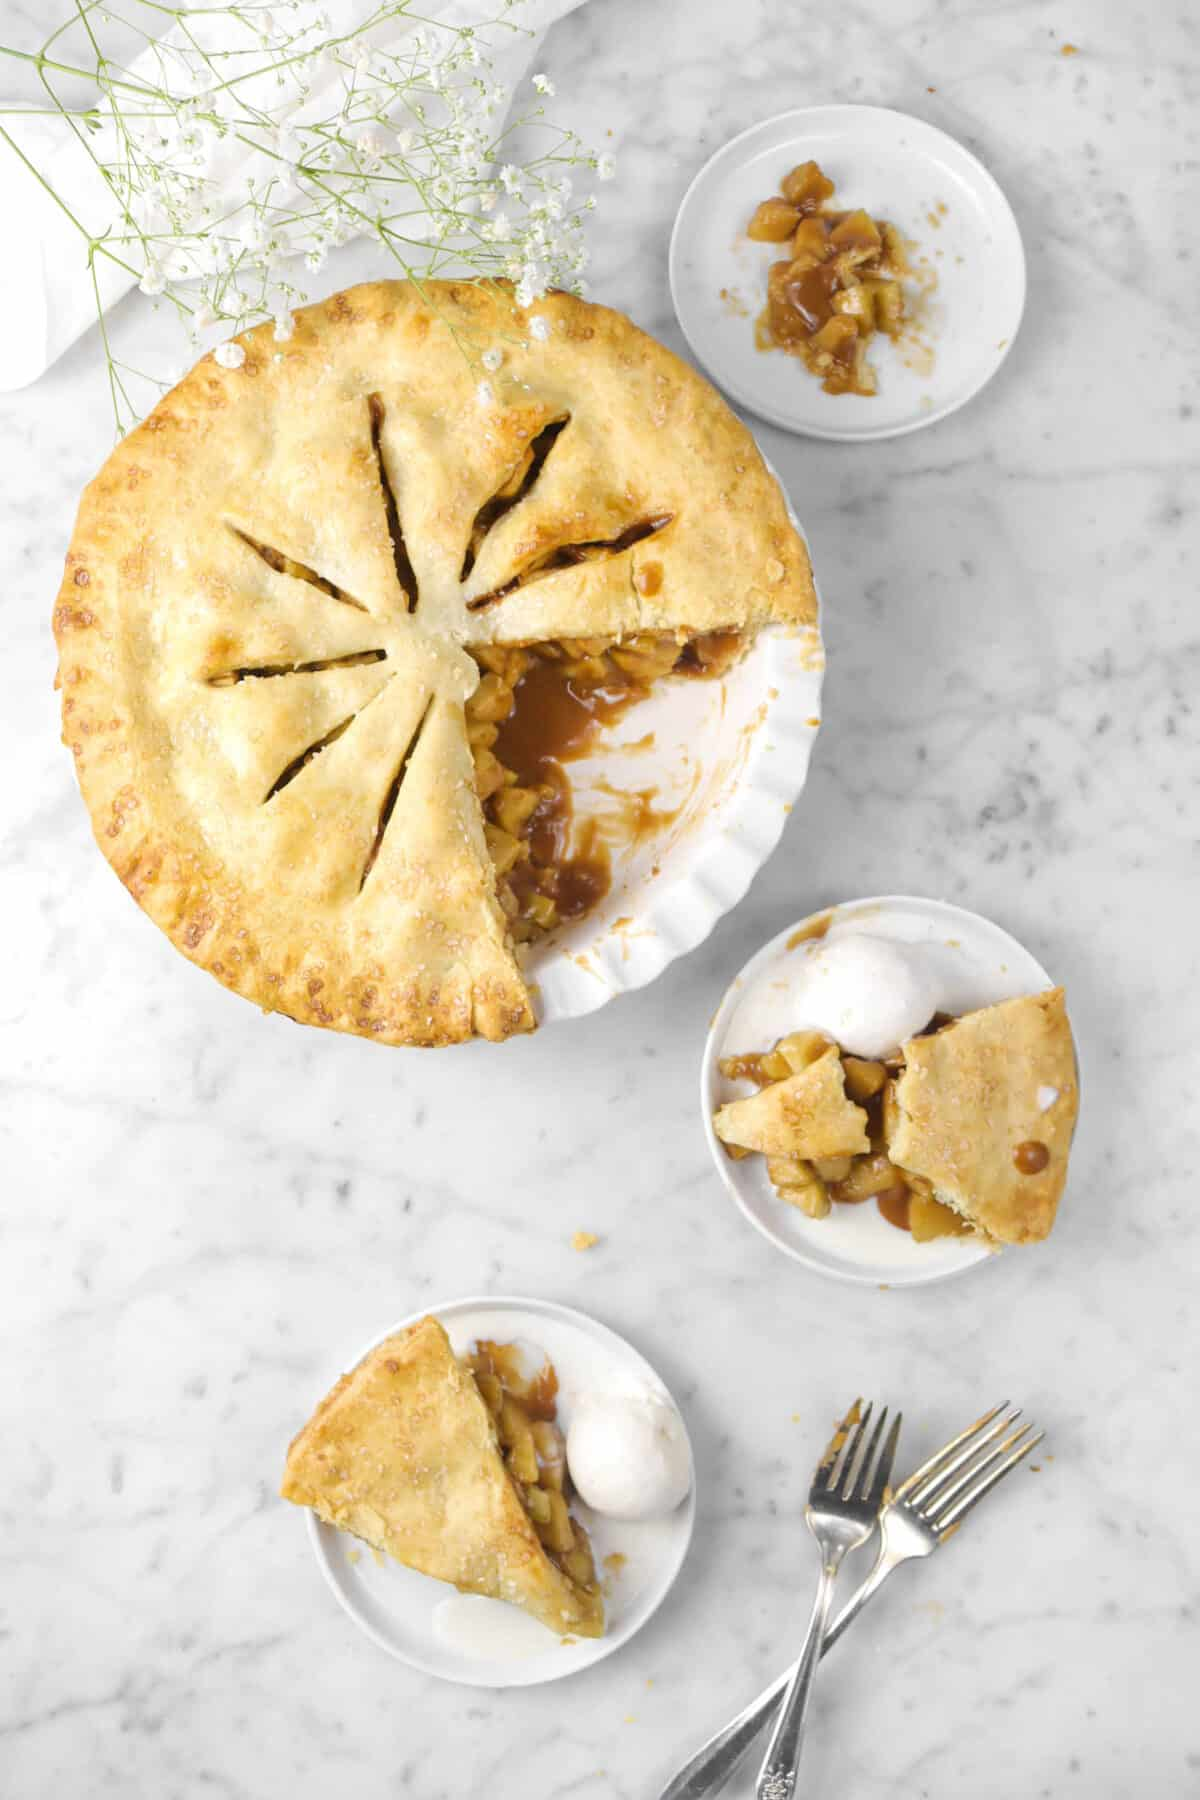 apple pie on marble counter with two slices taken out with white flowers